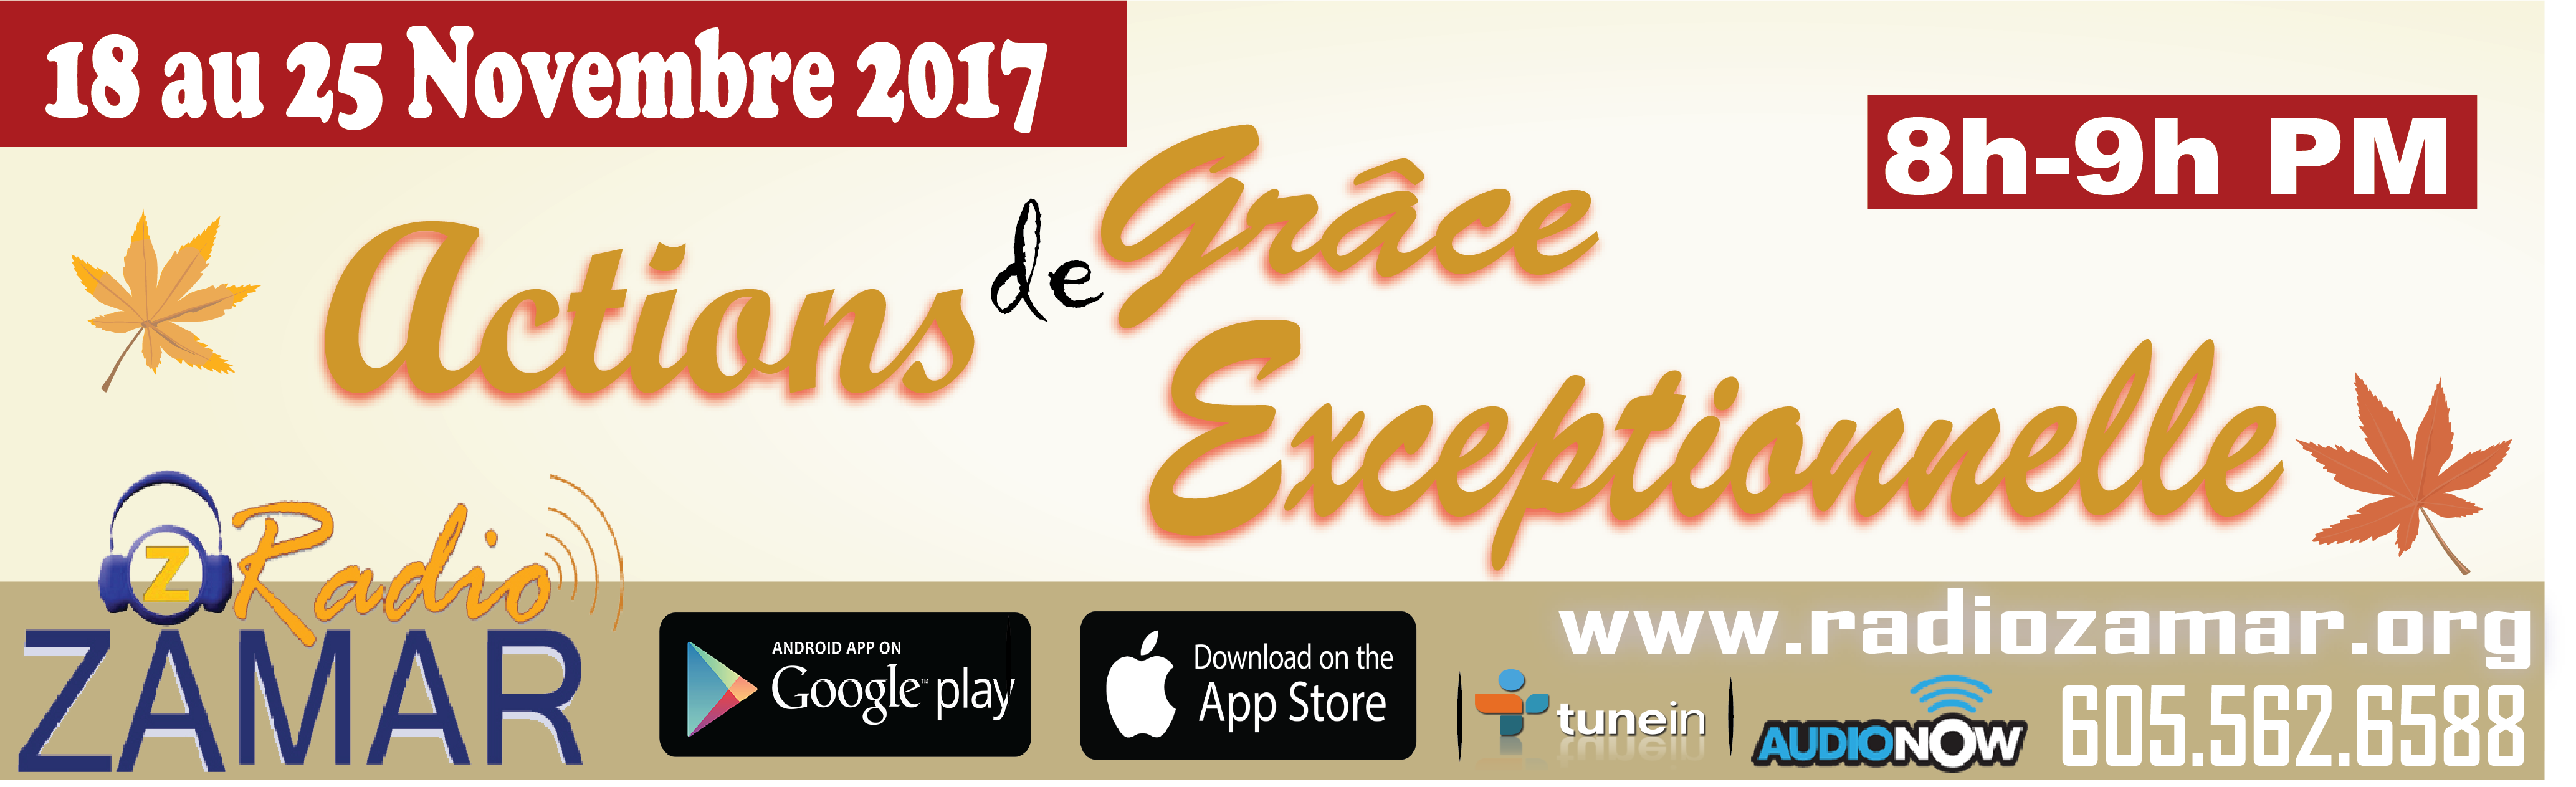 Actions de Grace Exceptionnelle